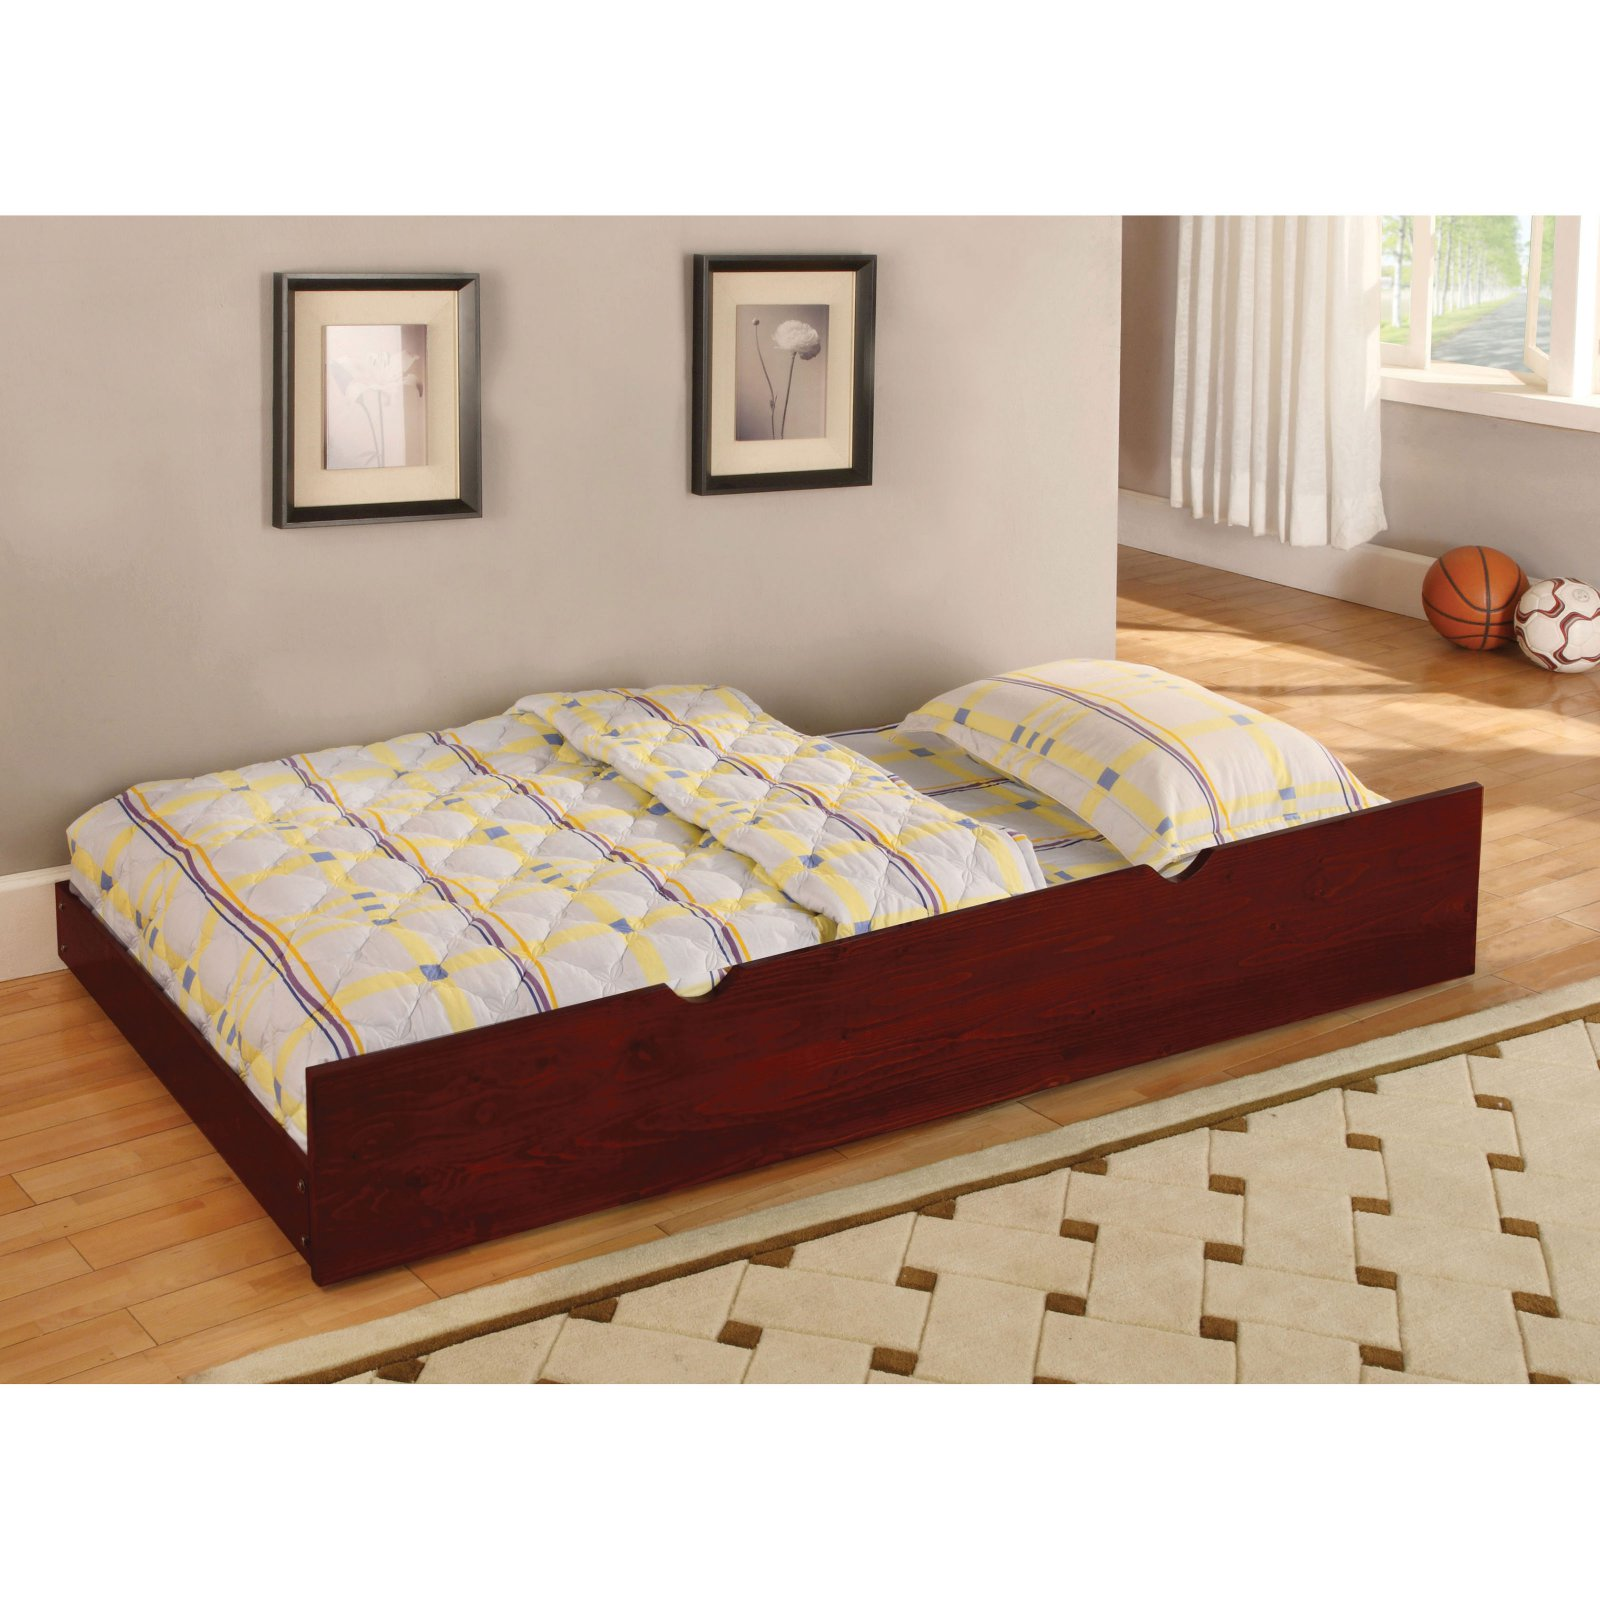 Furniture of America Parker Twin Trundle Bed by Enitial Lab